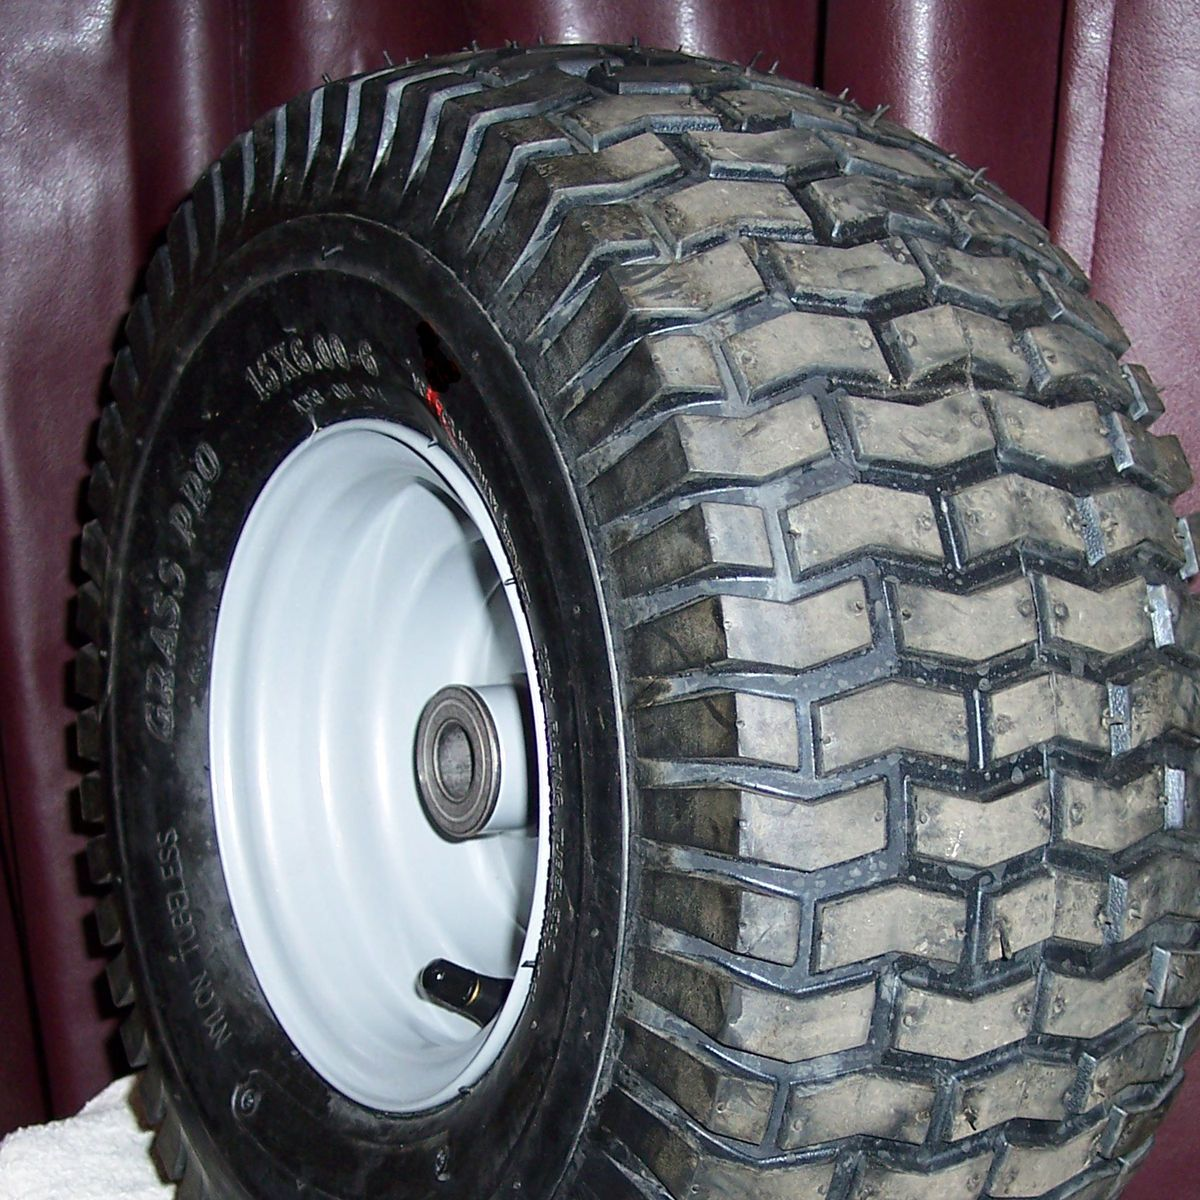 00 6 Riding Lawn Mower Garden Tractor Tire Rim Wheel Assembly